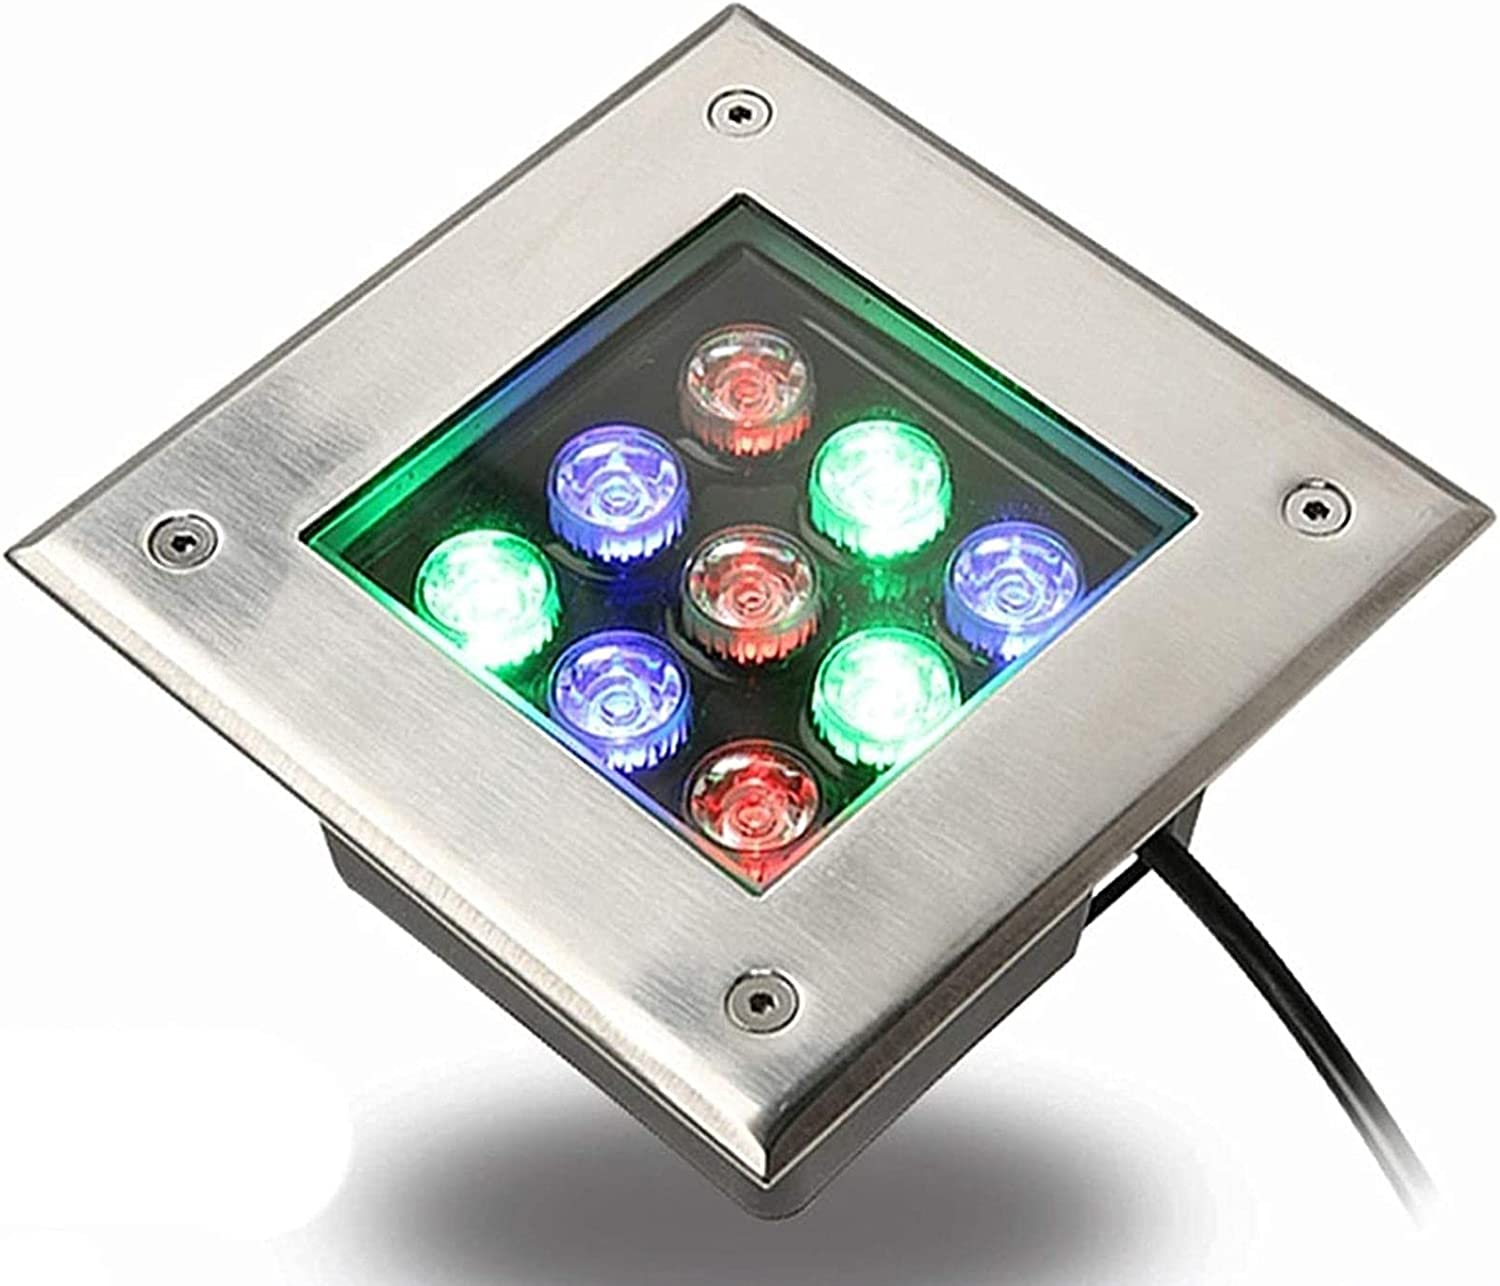 MWKLW Max 69% OFF RGB LED Max 89% OFF in ground 9W IP67 Well Waterpro Lights